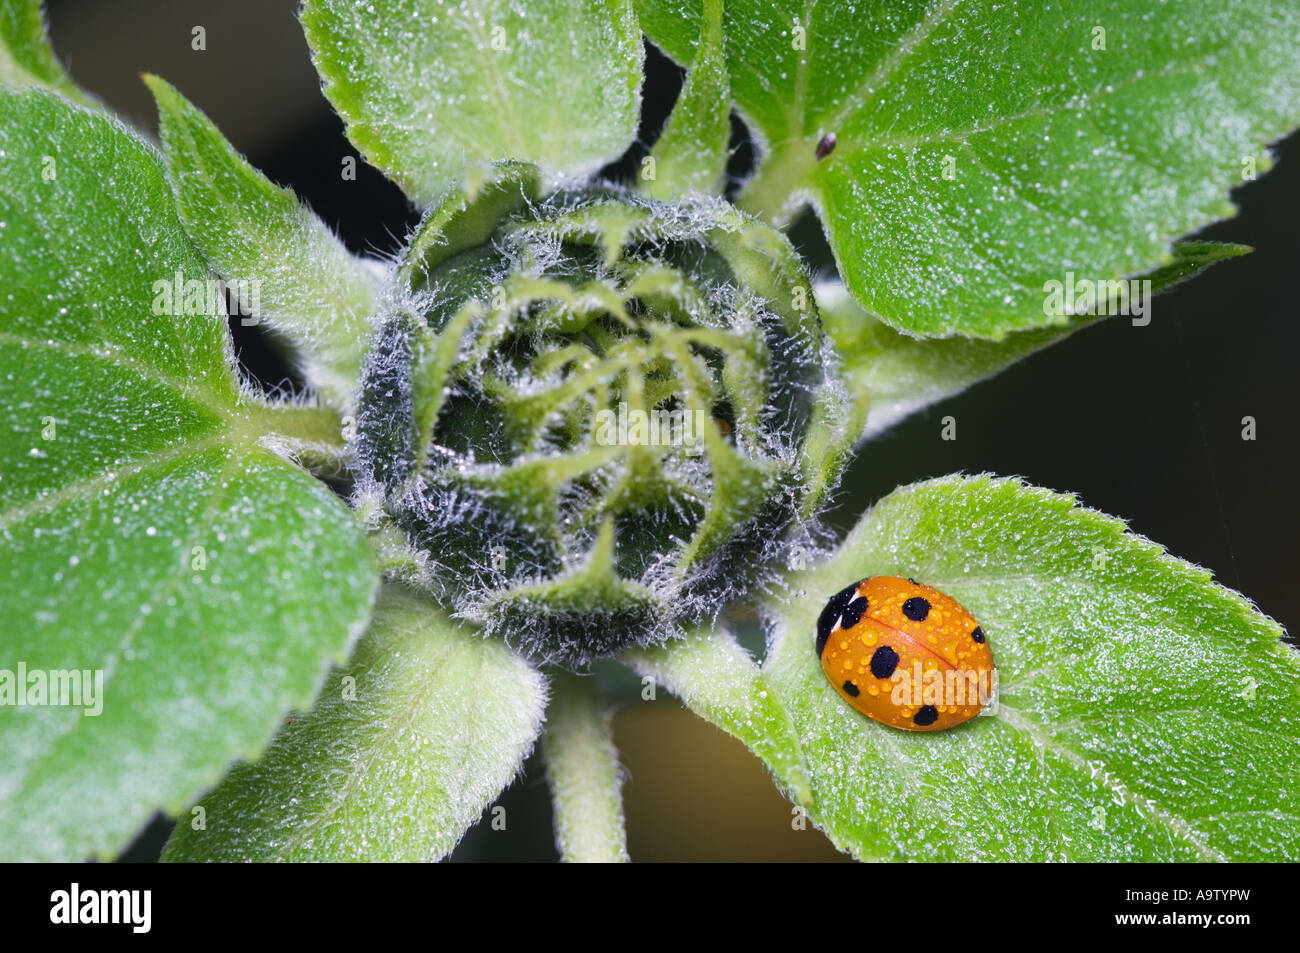 Seven spotted ladybird on sunflower plant Stock Photo